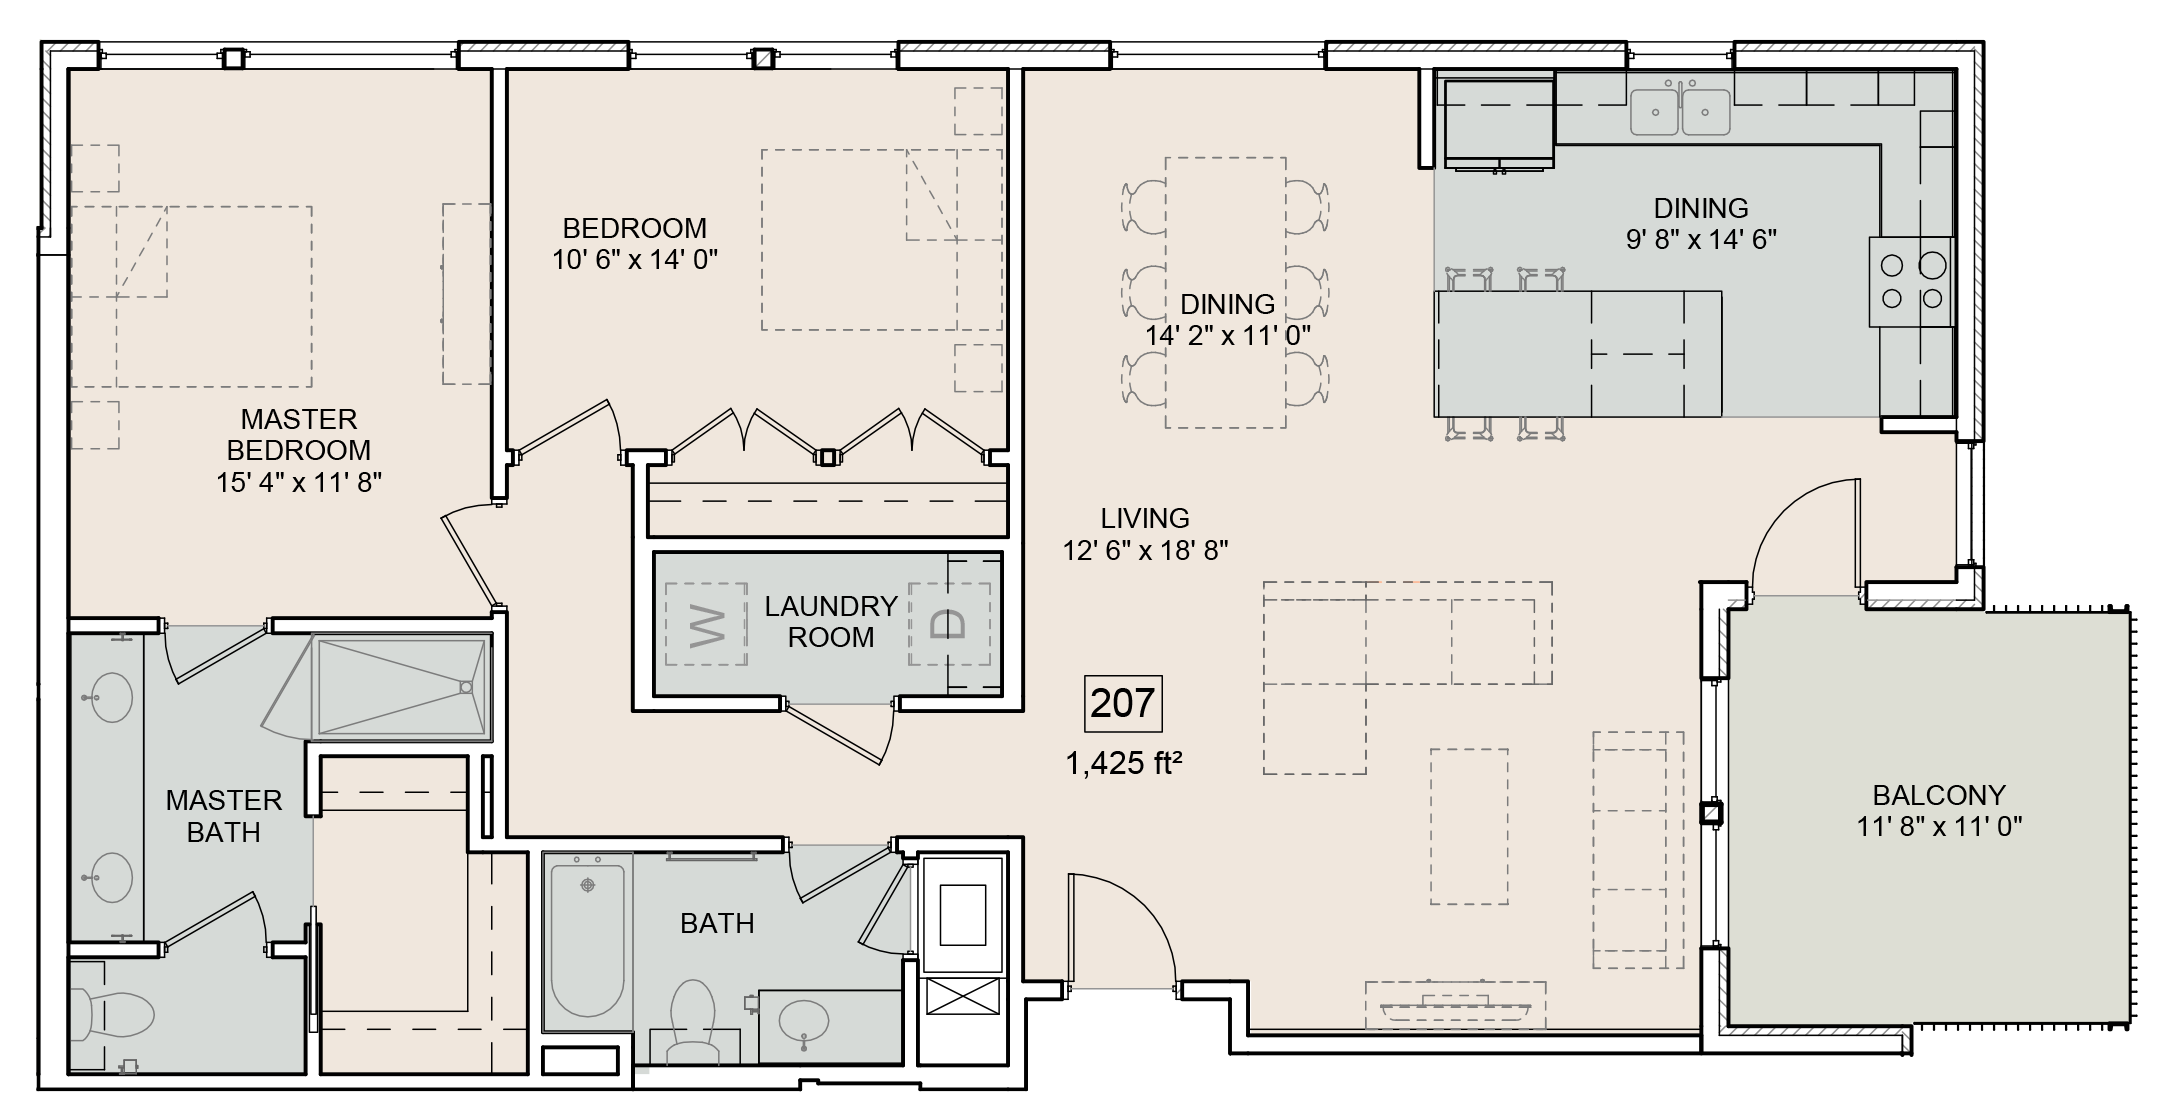 A Lewis unit with 2 Bedrooms and 2 Bathrooms with area of 1425 sq. ft